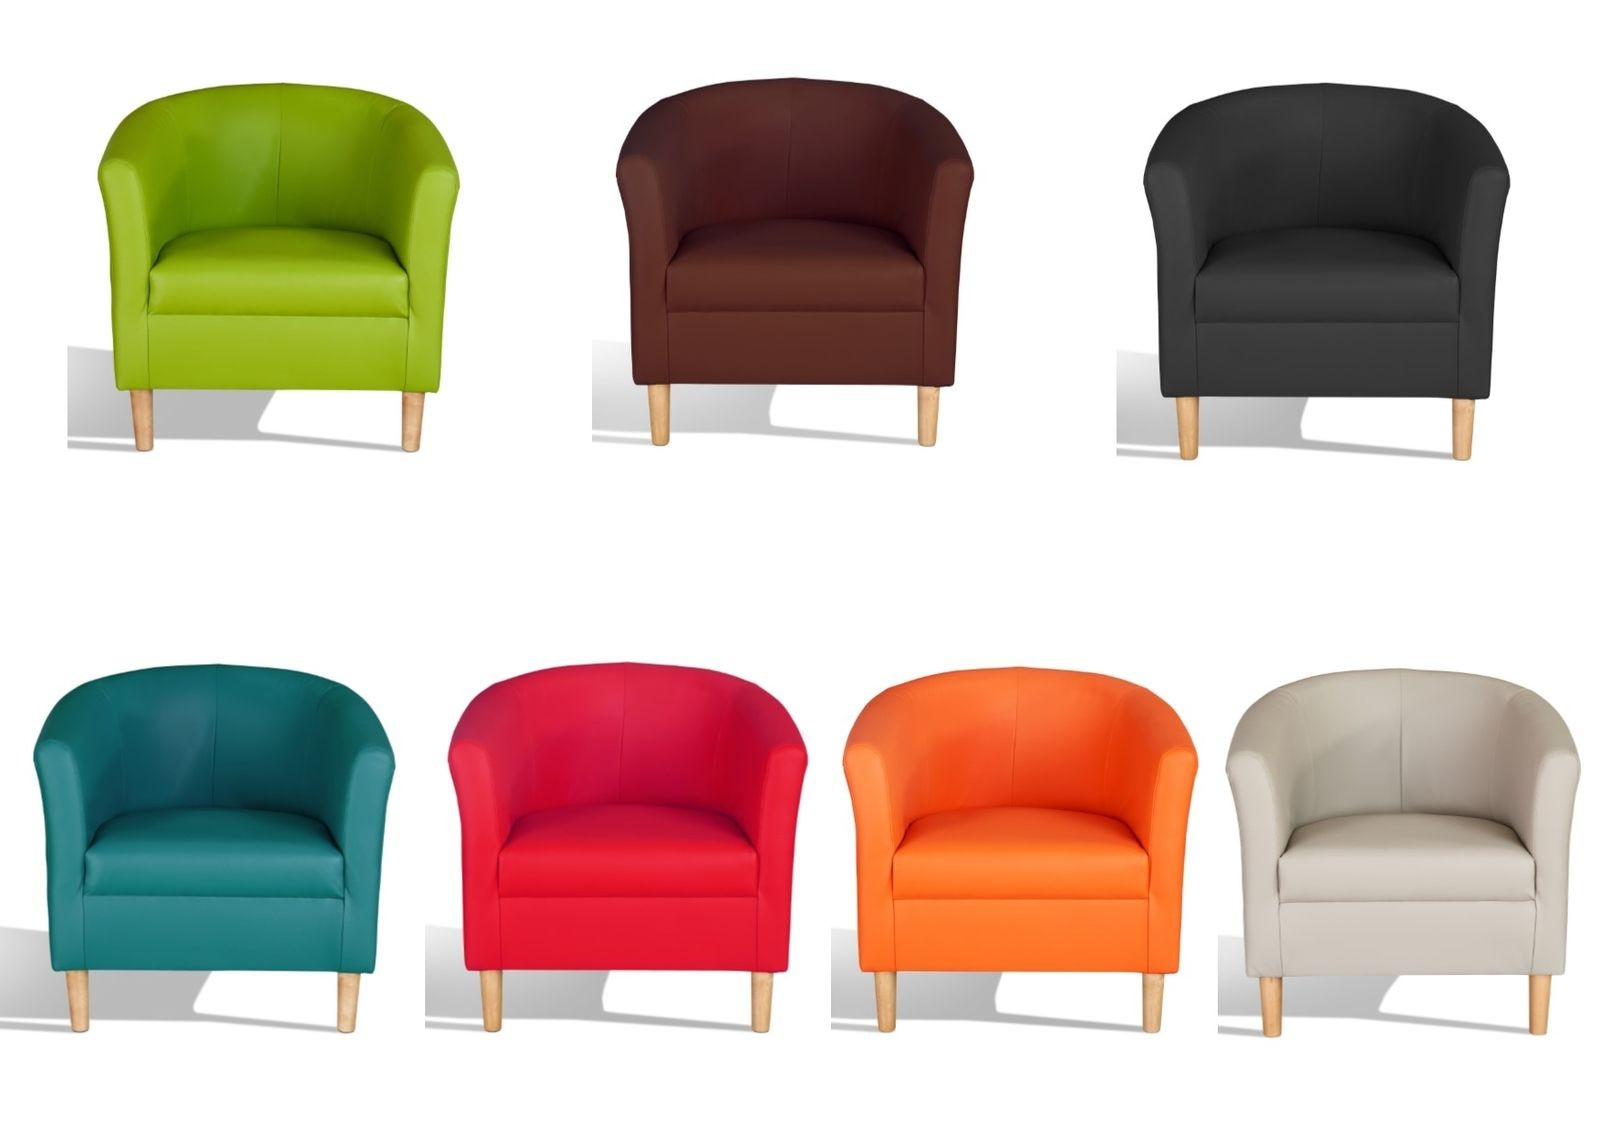 Hamony Faux Leather Tub Chairs In Various Colors With Regard To Trendy Liam Faux Leather Barrel Chairs (View 17 of 20)